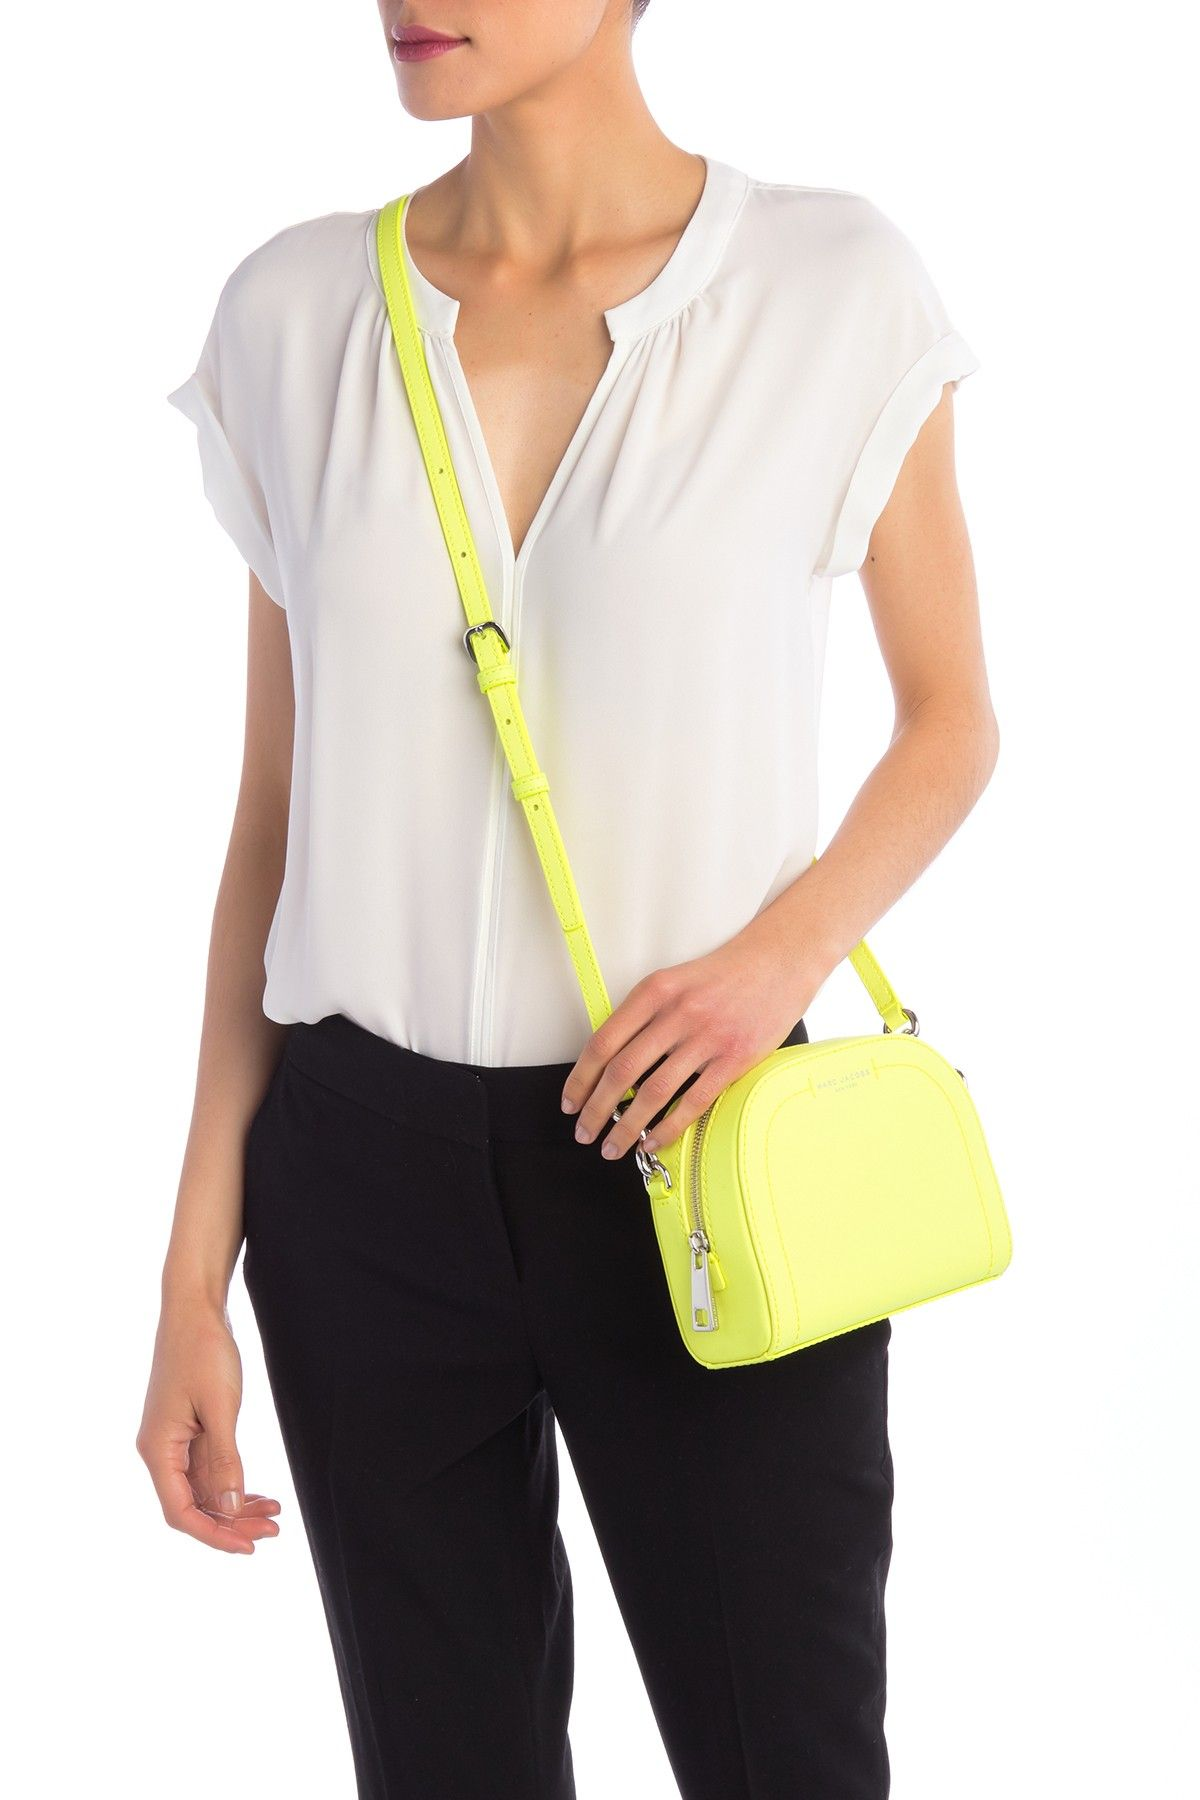 e69a881902b7 Image of Marc Jacobs Playback Leather Crossbody Bag